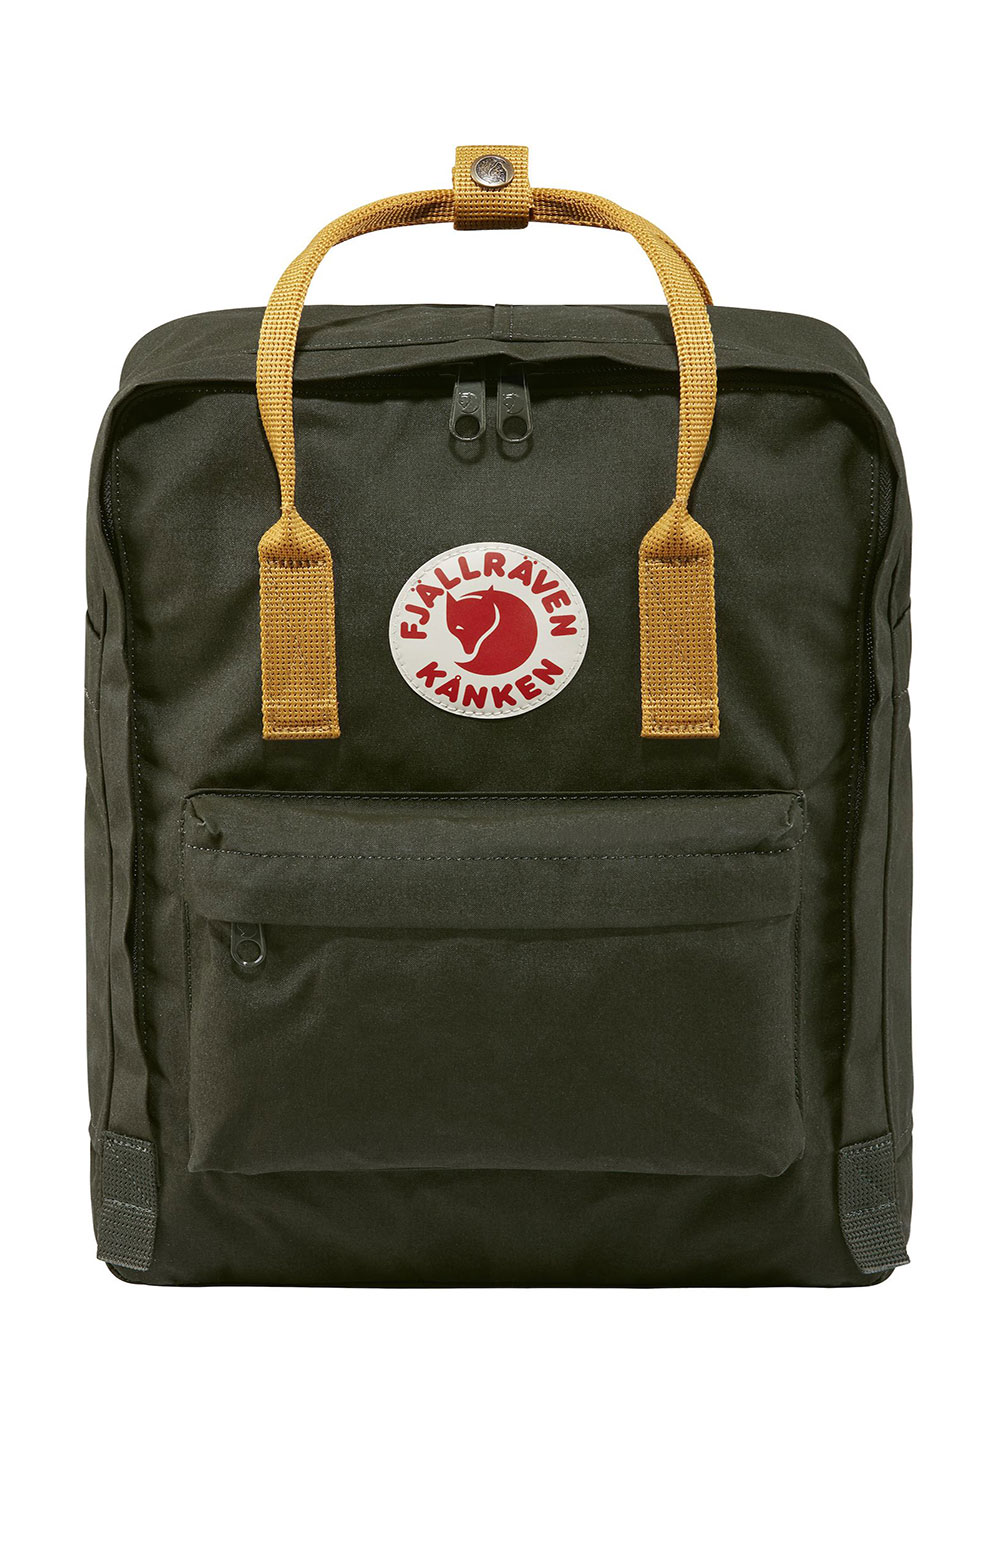 Kanken Backpack - Deep Forest/Acorn  2